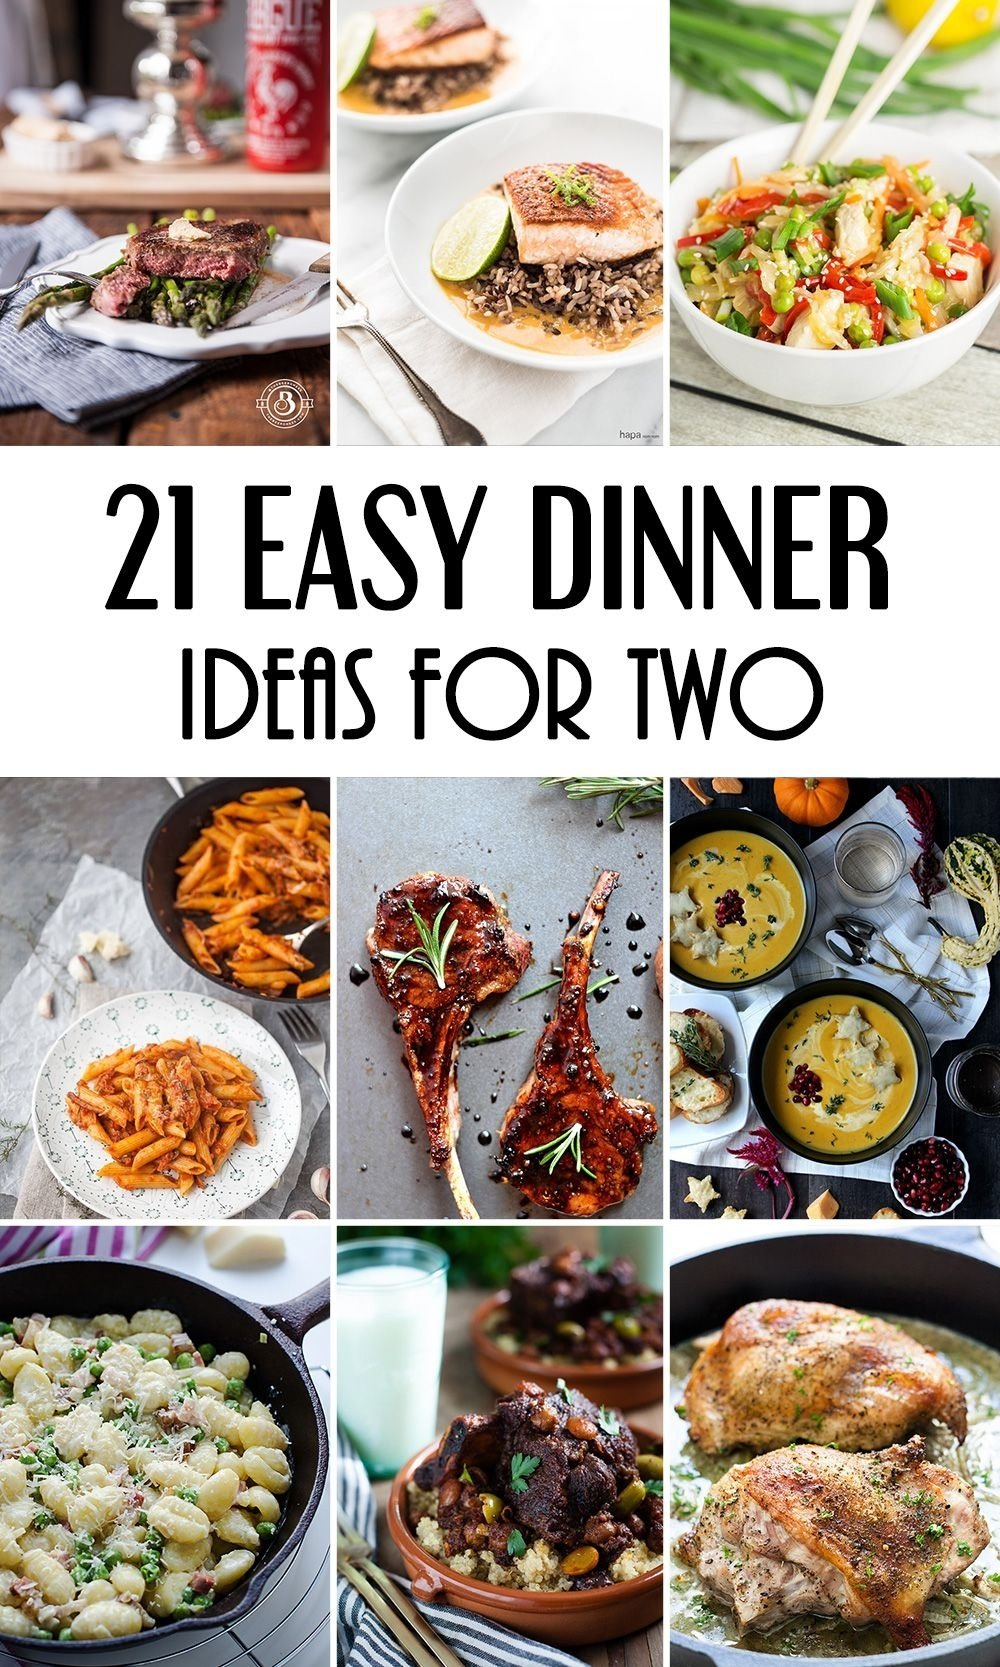 10 Nice Quick Meal Ideas For Two 21 easy dinner ideas for two that will impress your loved one 25 2020